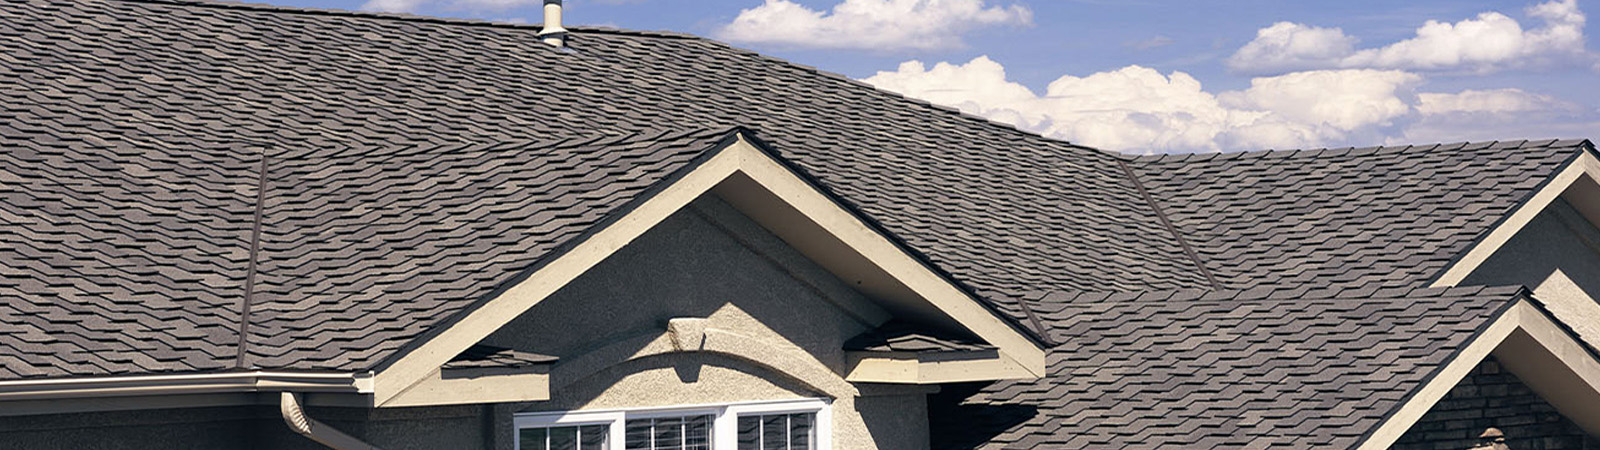 roofers san Antonio|Shingle roof repair services san antonio|best roofing companies in san Antonio|free roof estimate san antonio tx